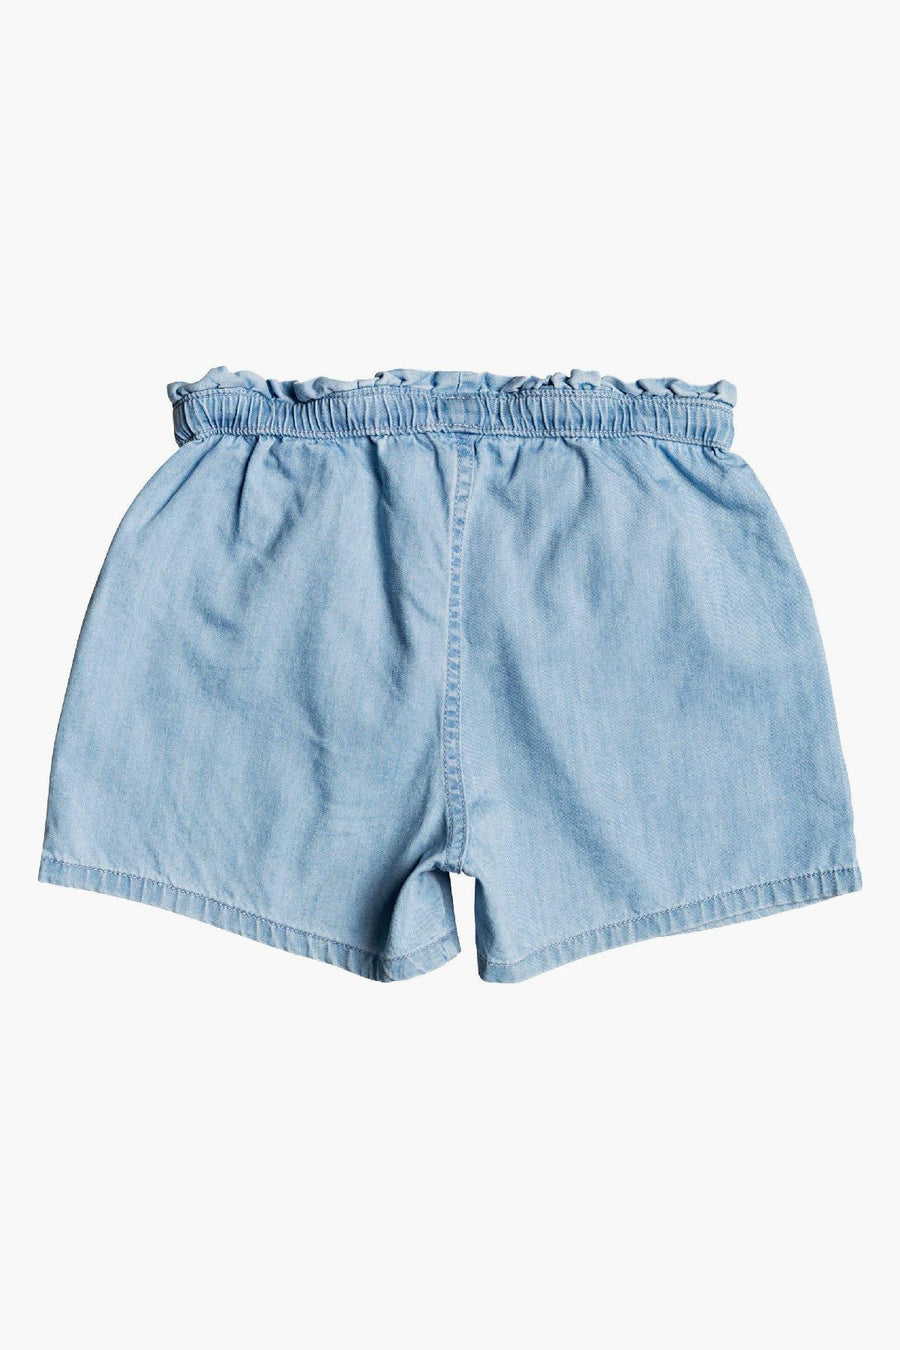 Roxy Right Here Girls Shorts